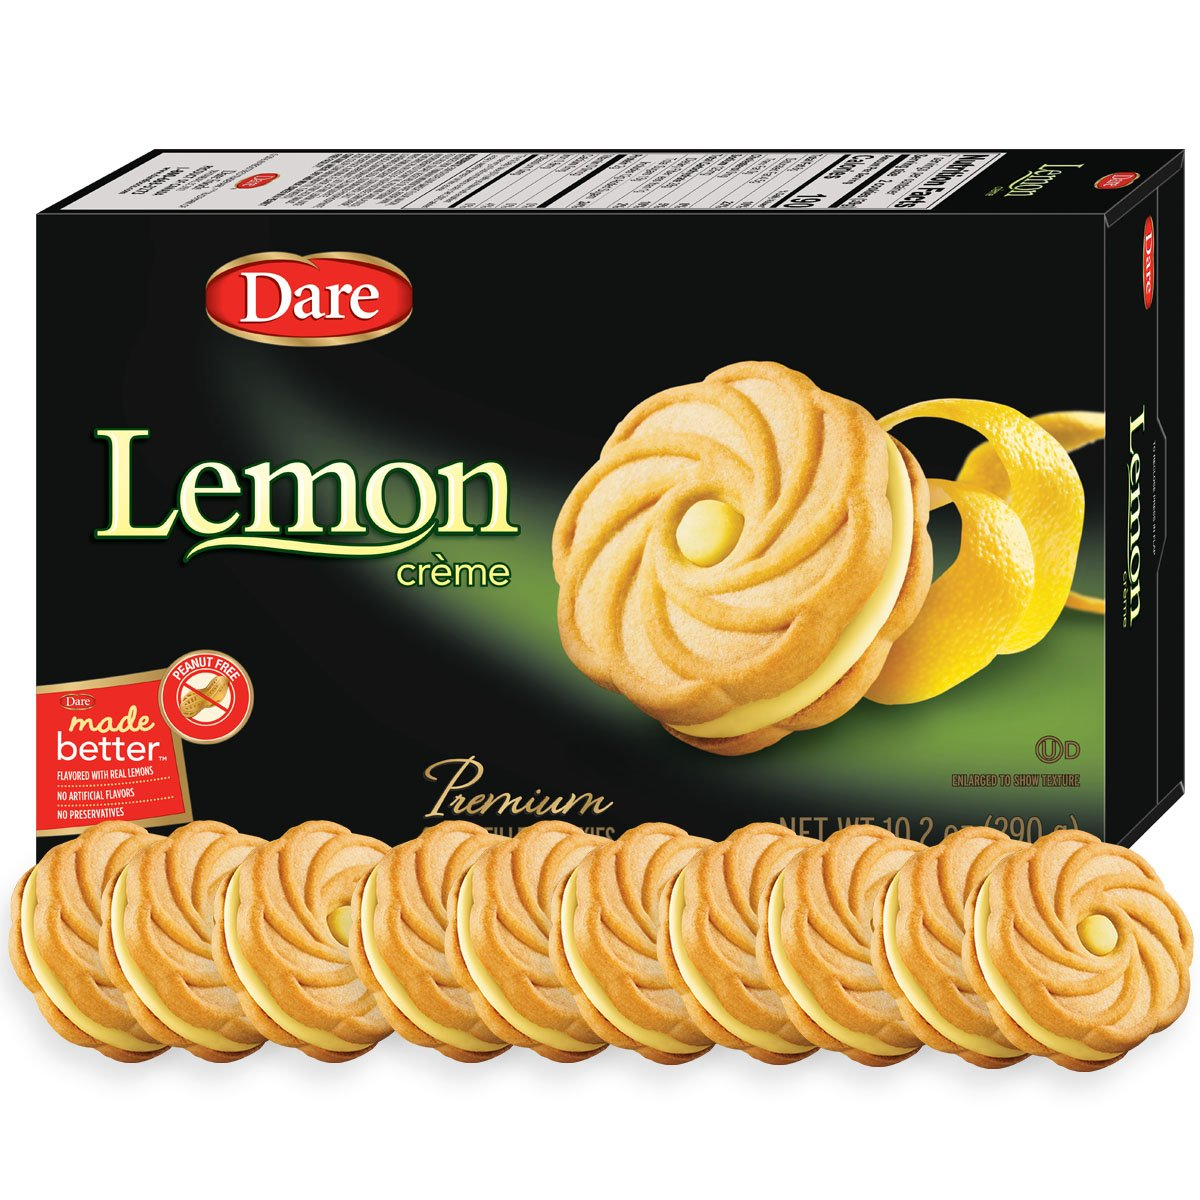 Dare Lemon Crème Cookies - Made Fresh with Real Lemon Filling and No Artificial Flavors, Peanut Free - 10.2 Ounces (Pack of 12) by Dare